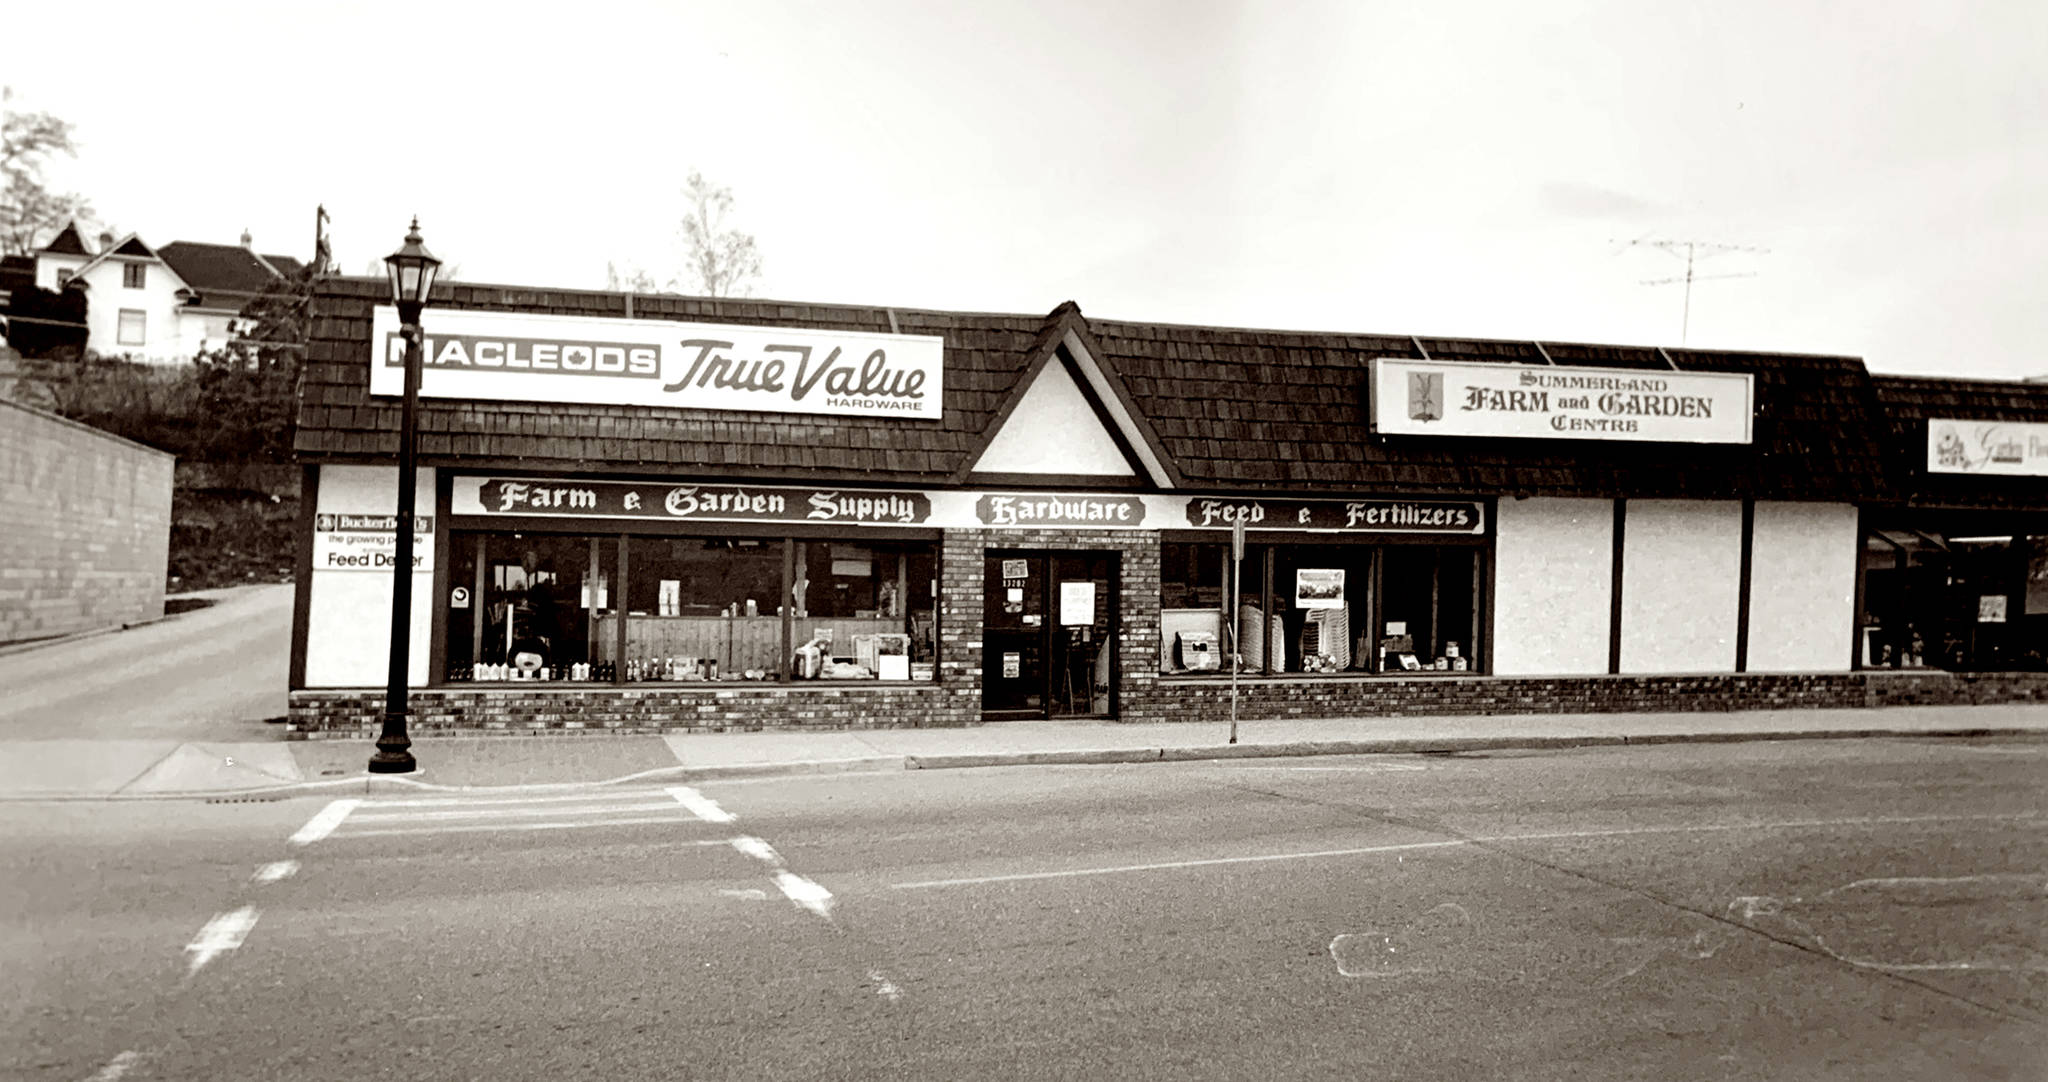 Old English design elements can be seen in the sign of the Summerland Farm and Garden Centre in 1993. The guidelines are no longer in place, but some downtown businesses still show aspects of the days when Summerland had a theme in place. This photo was taken by Summerland photographer Dan Dorotich. (Photo courtesy of the Summerland Museum)